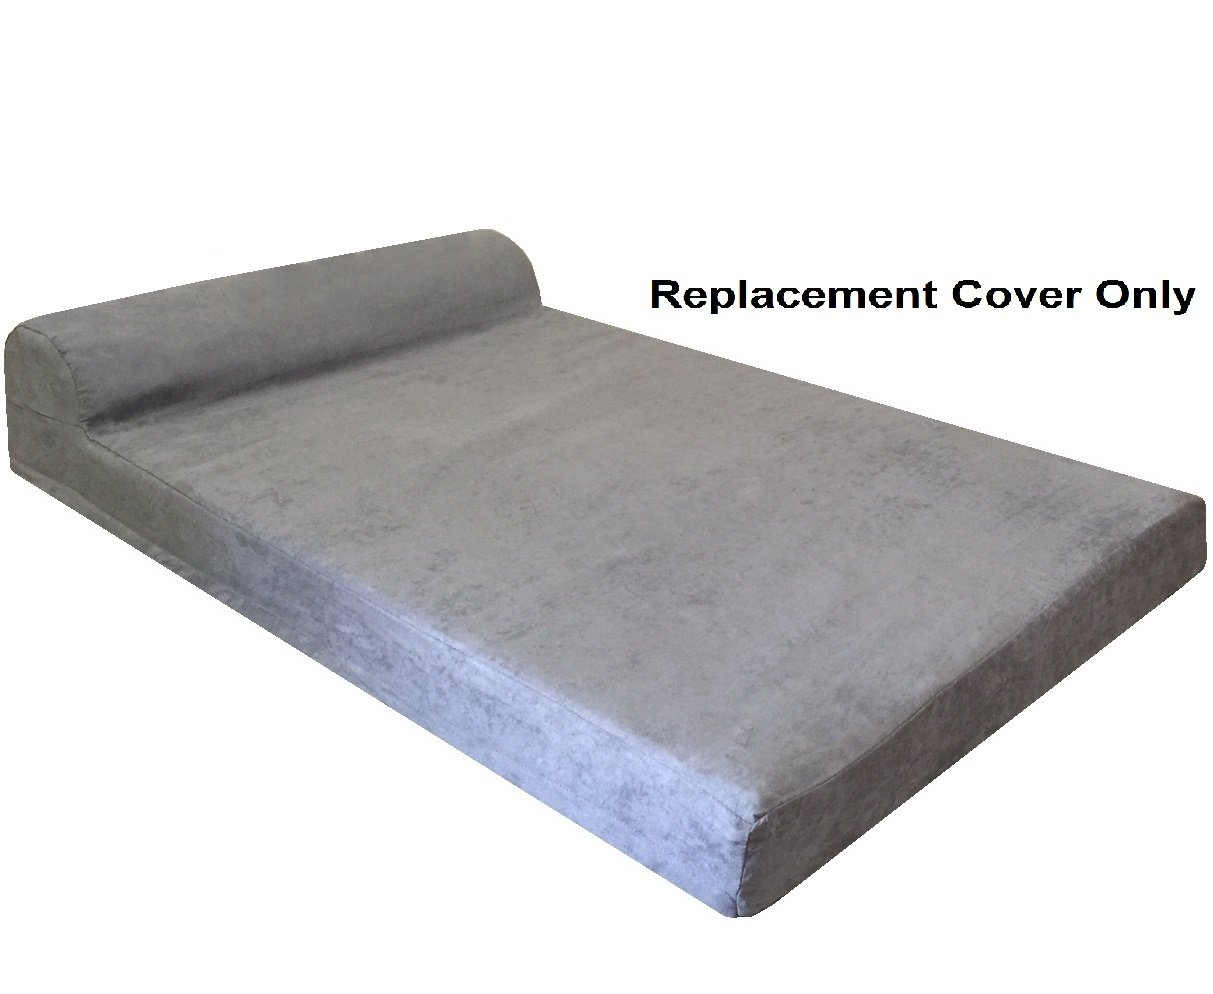 Dogbed4less HeadRest Dog Pet Bed Micro suede External Cover - Replacement cover only - XL 47''X29''X4'' Size - Gray